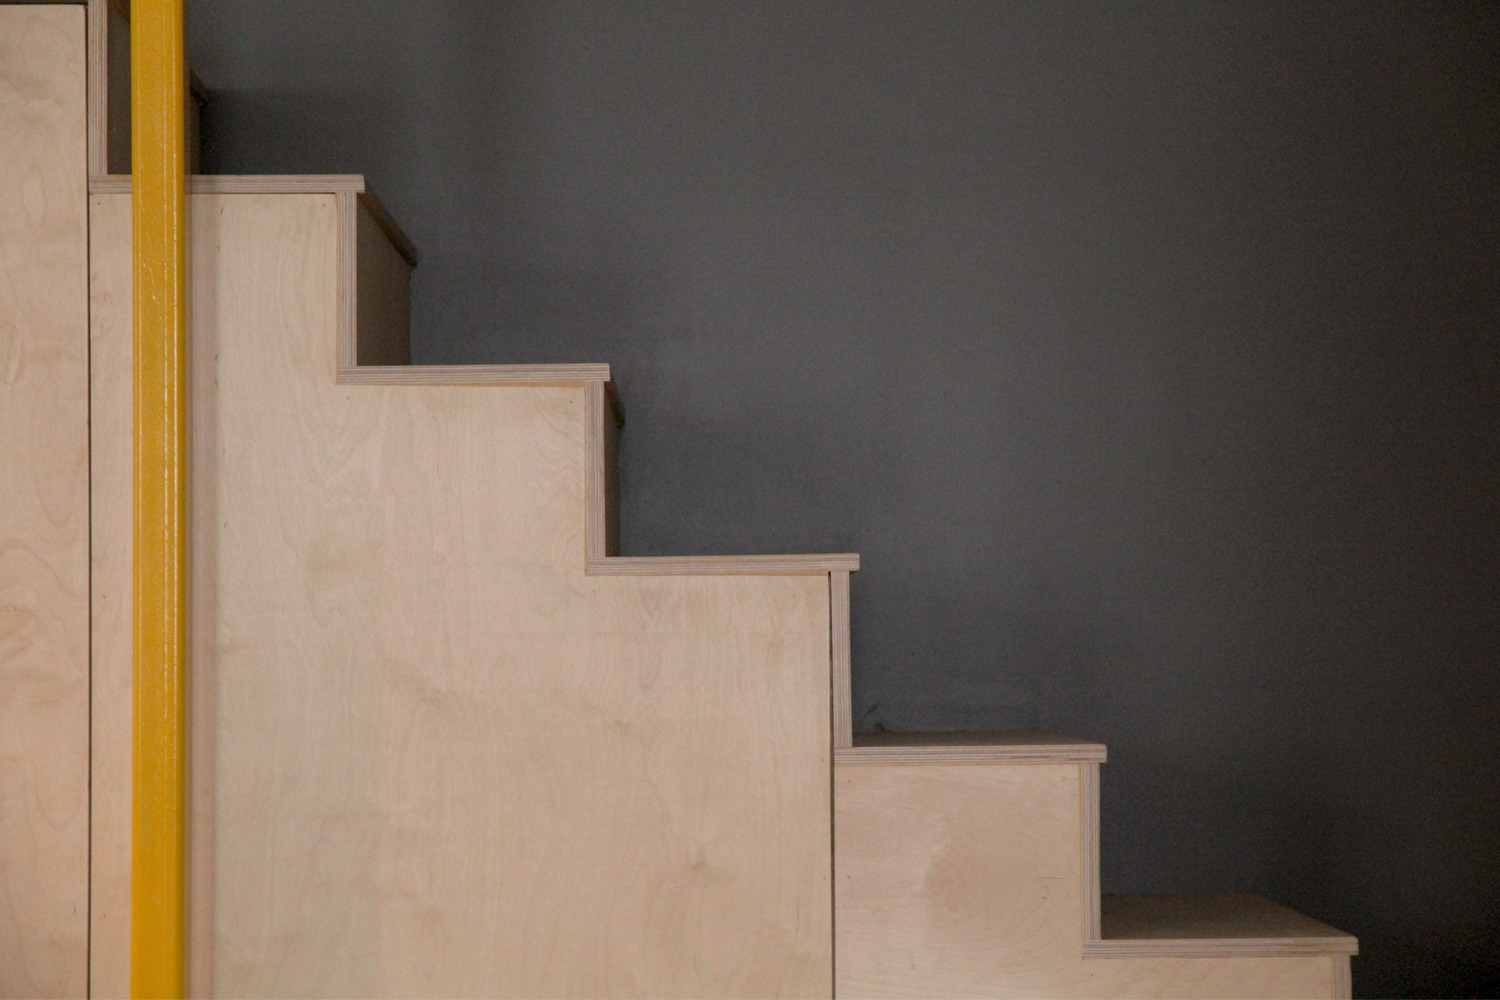 Staircase made of plywood. Structure holding the floor tubular square steel 4x4 yellow.